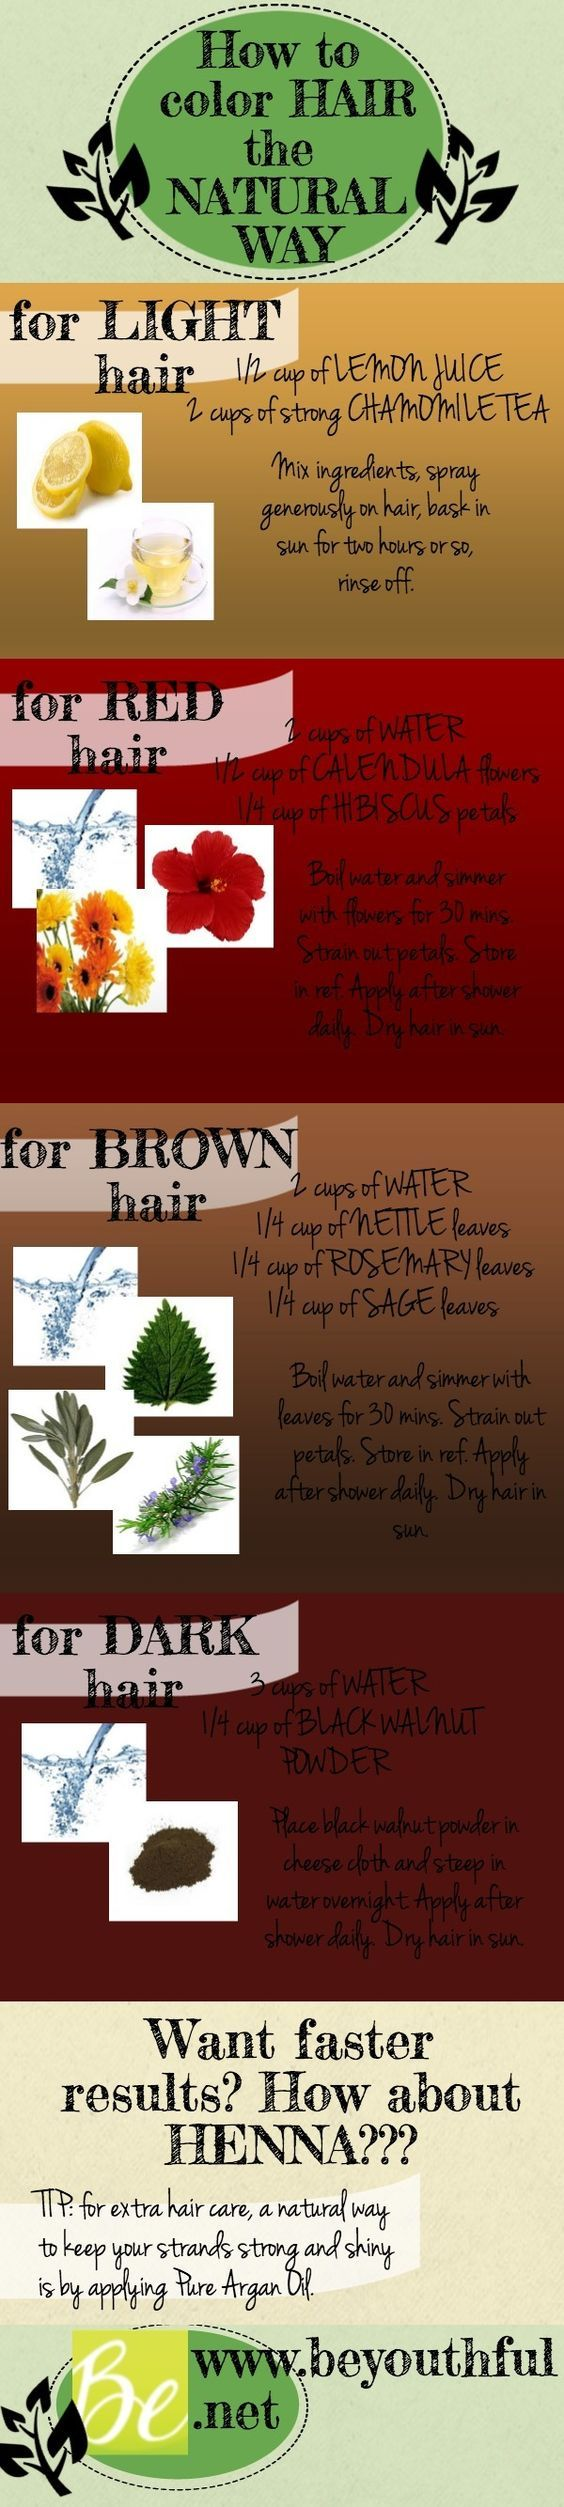 How to dye hair naturally. New year, new hair color, new and natural way of doing it! http://beyouthful.net/infographic-how-to-dye-hair-naturally-new-year-new-hair-color/